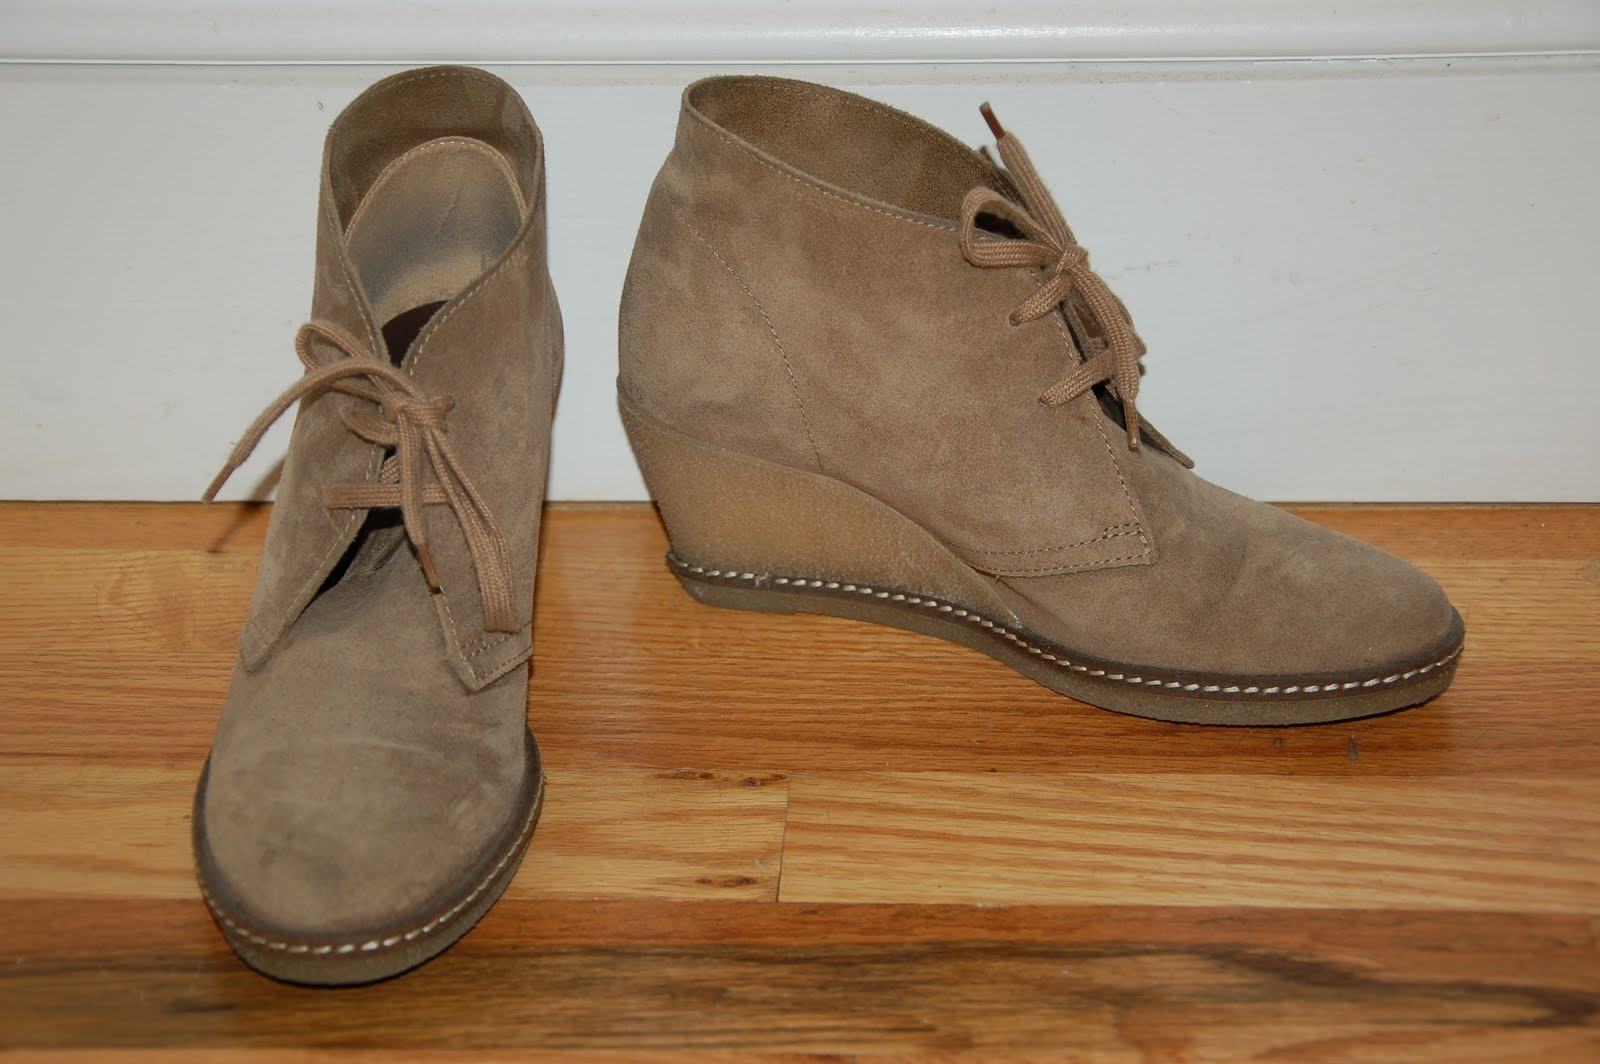 laws of general economy j crew macalister boots size 7